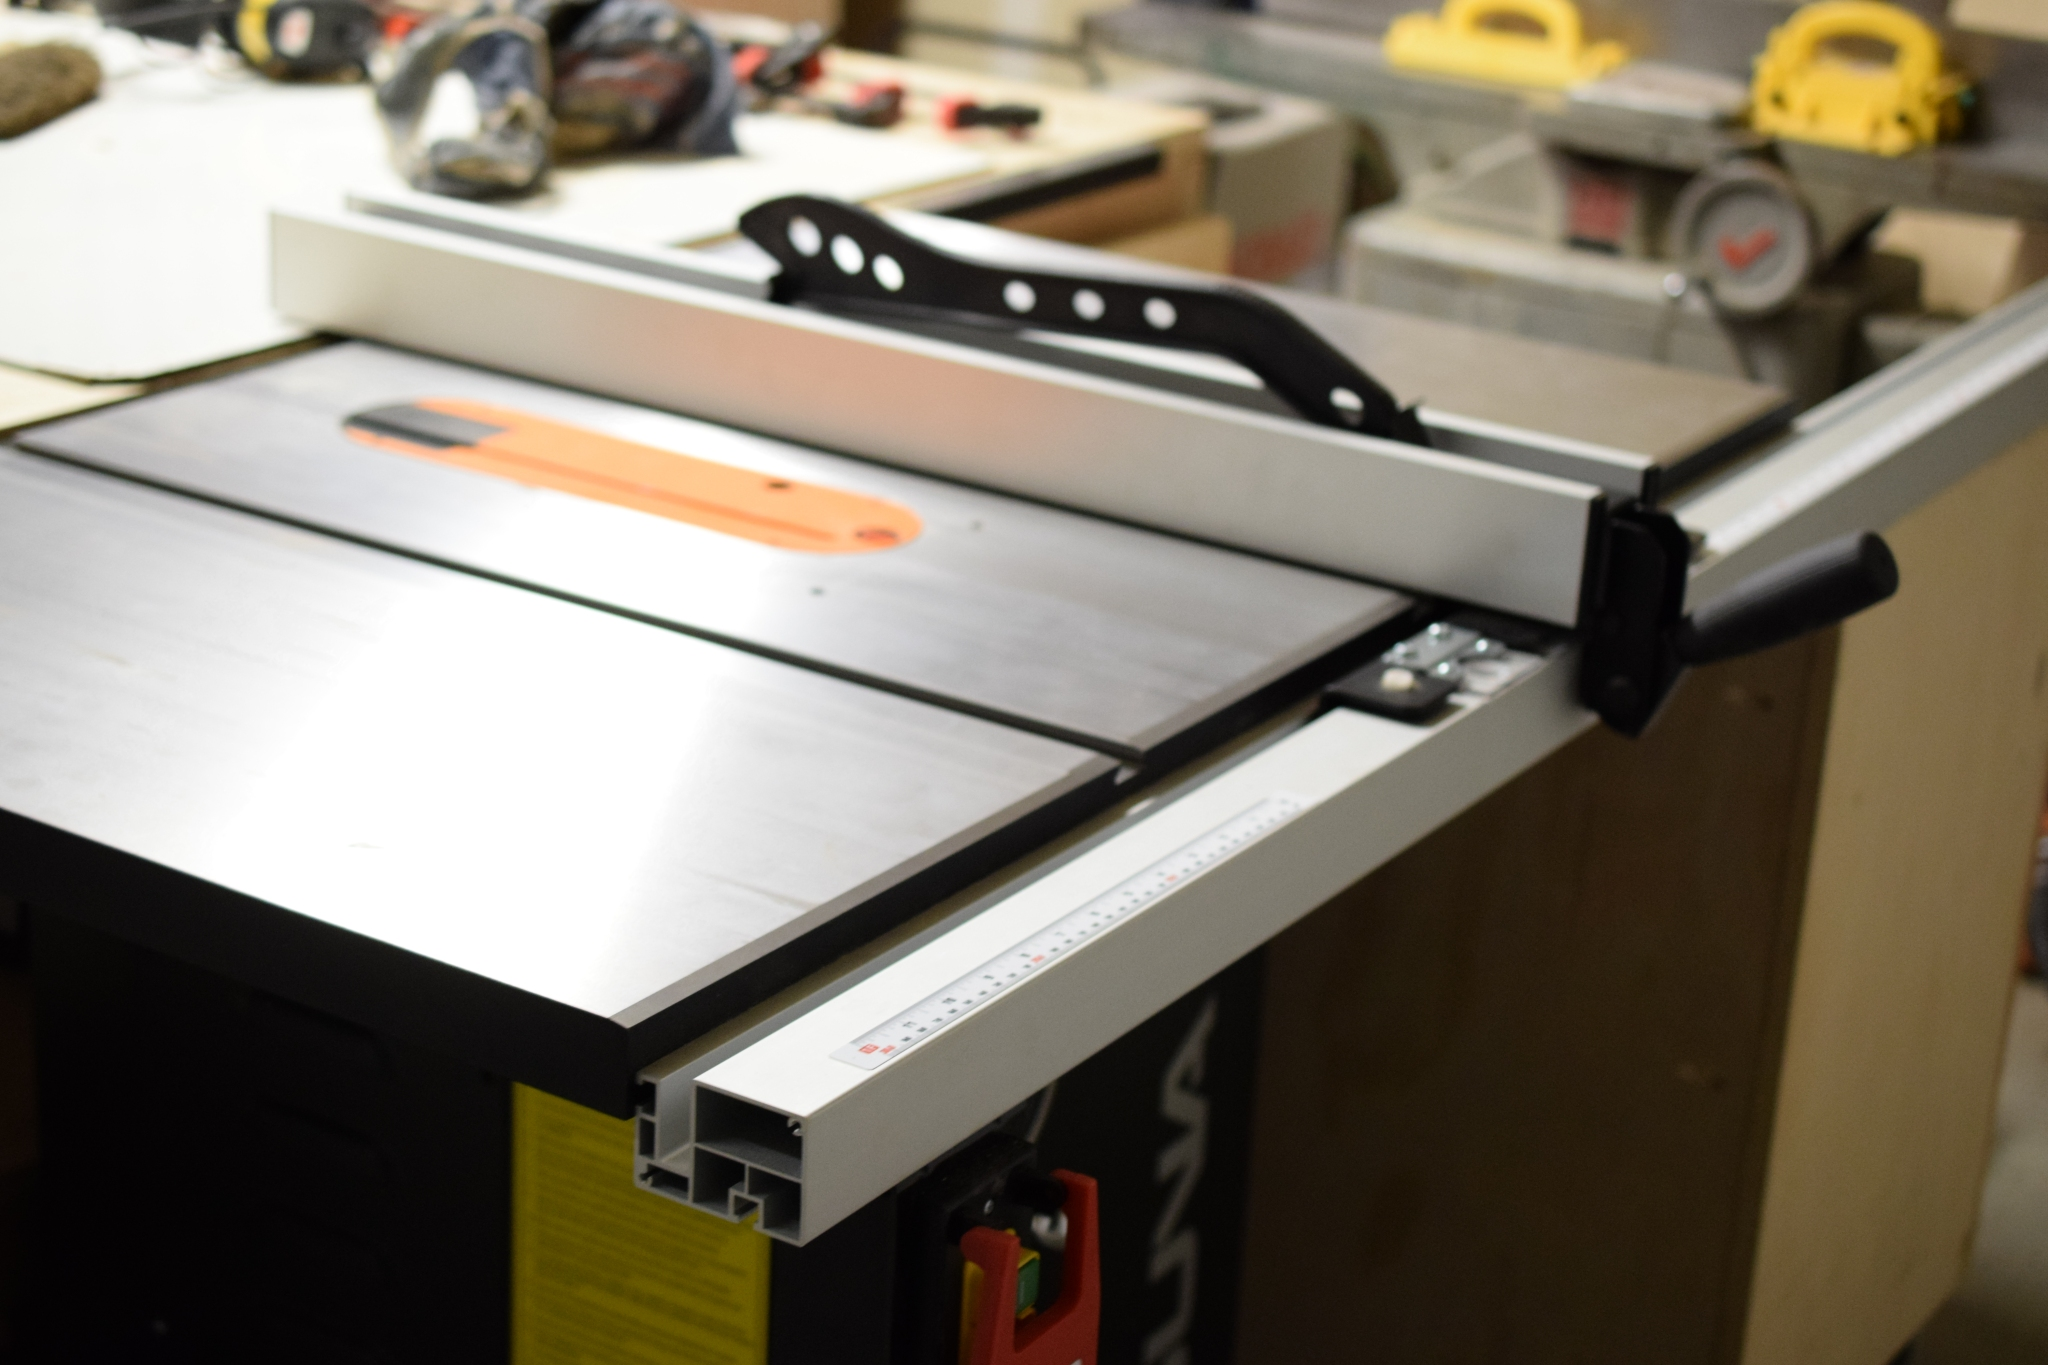 Laguna fusion table saw review how it compares to other table saws Table saw fence